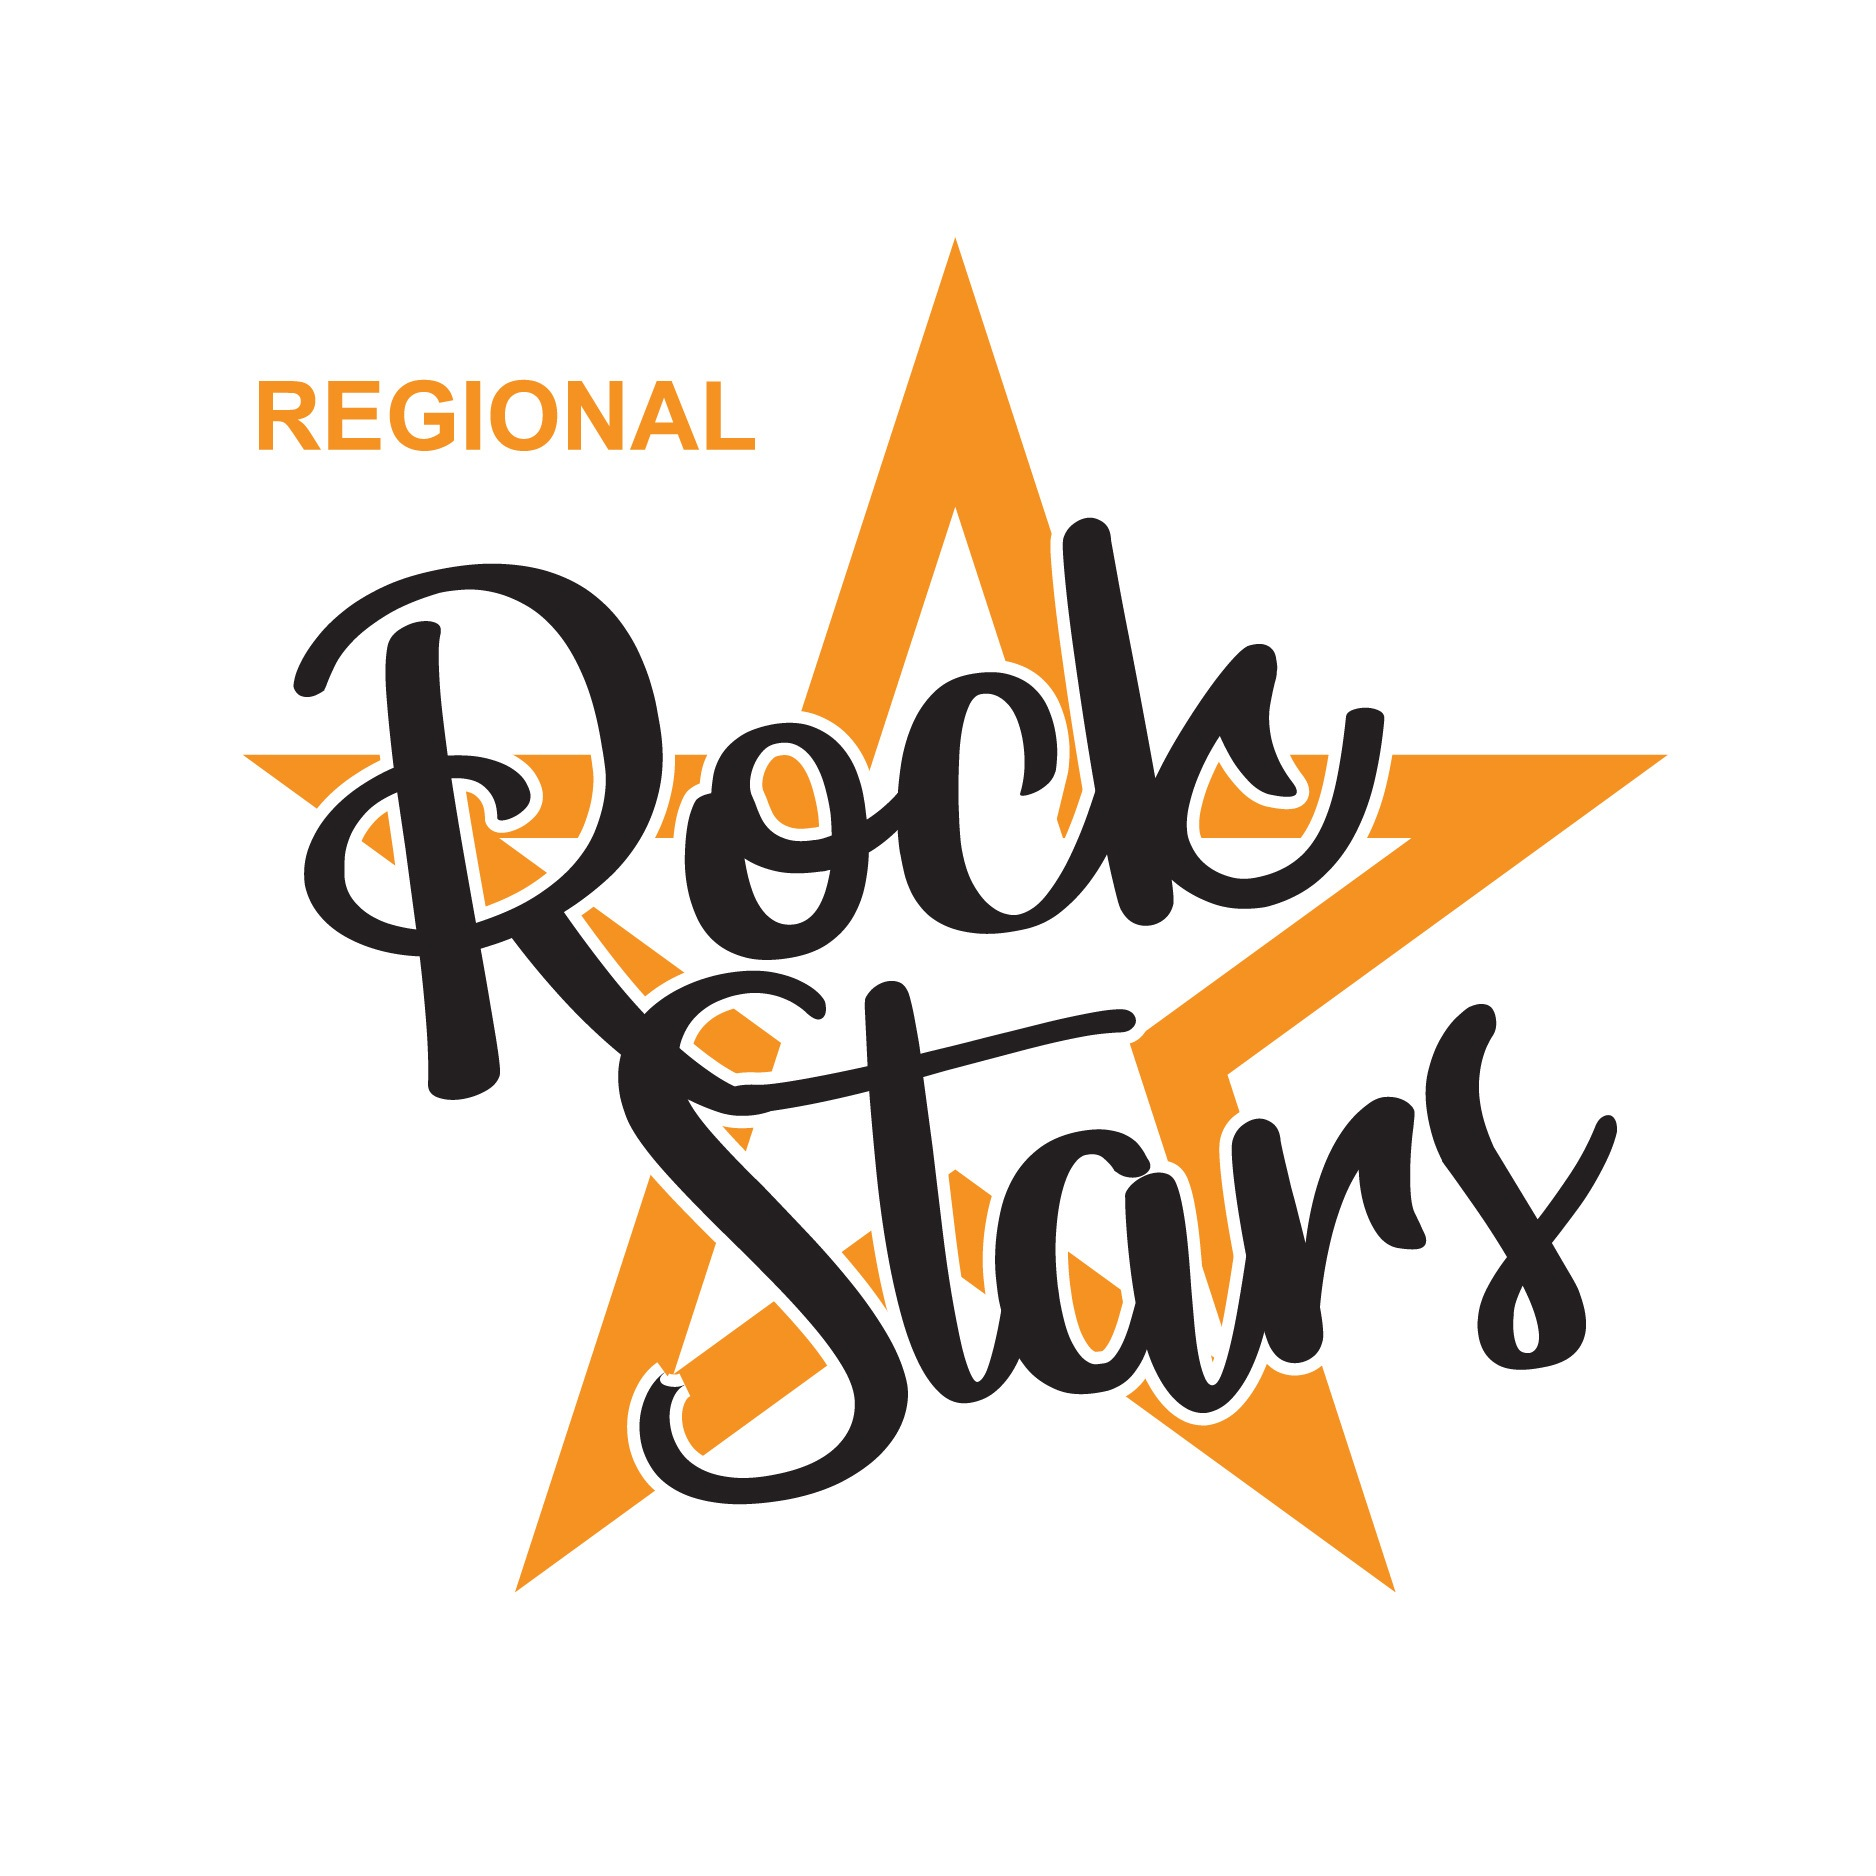 Discovering Kindness through Regional Rock Stars